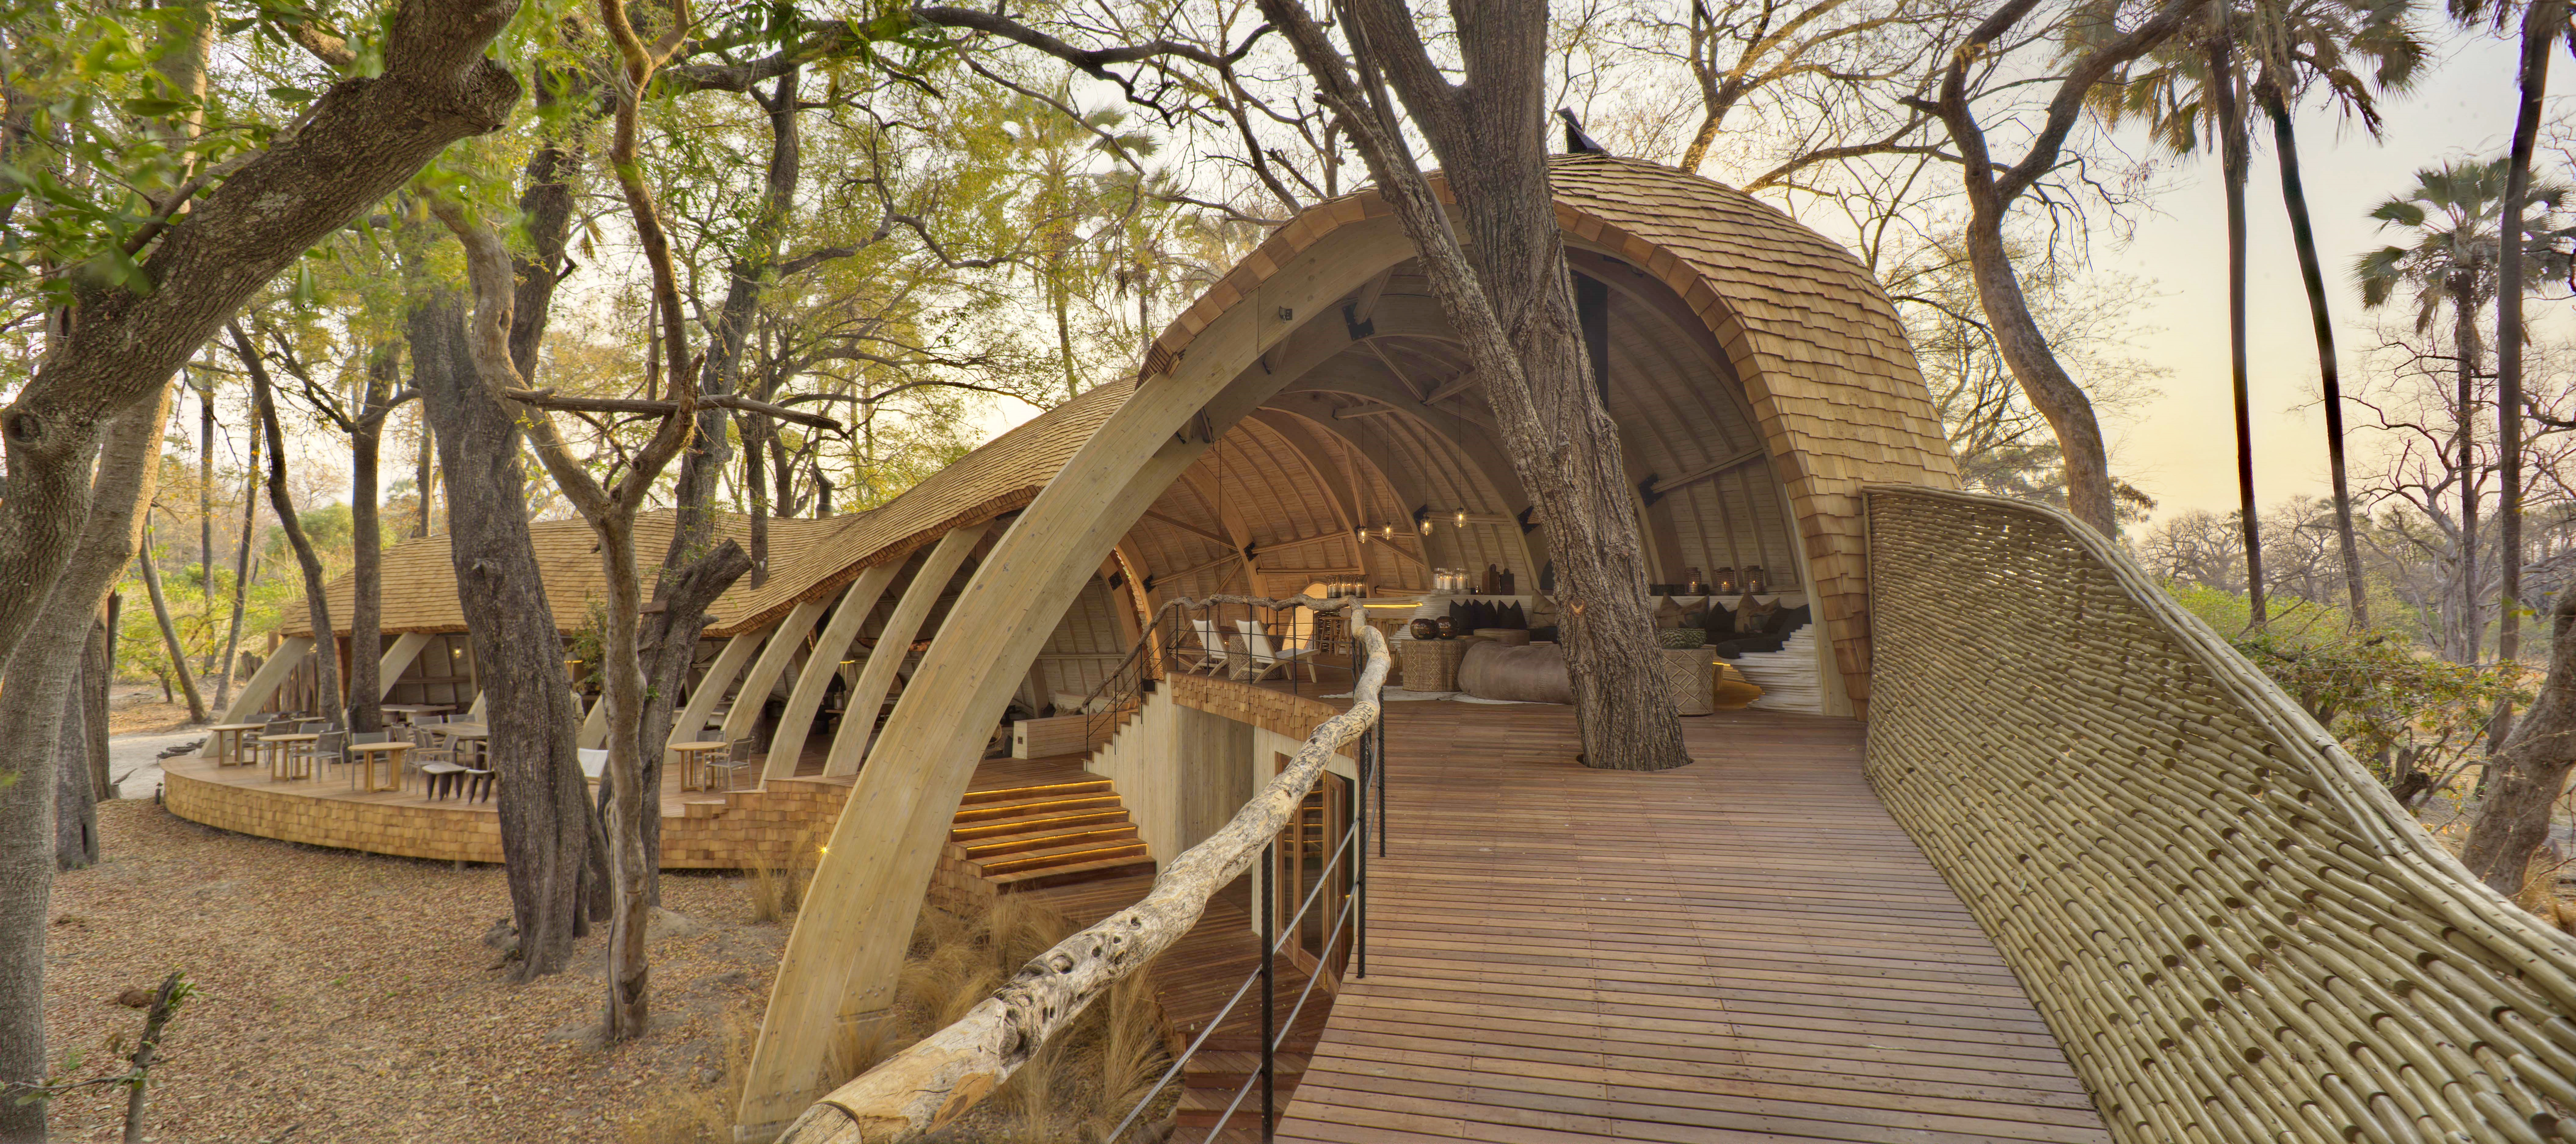 Architecturally Impressive Hotels Around The World | andBeyond Sandibe Okavango Safari Lodge - Botswana